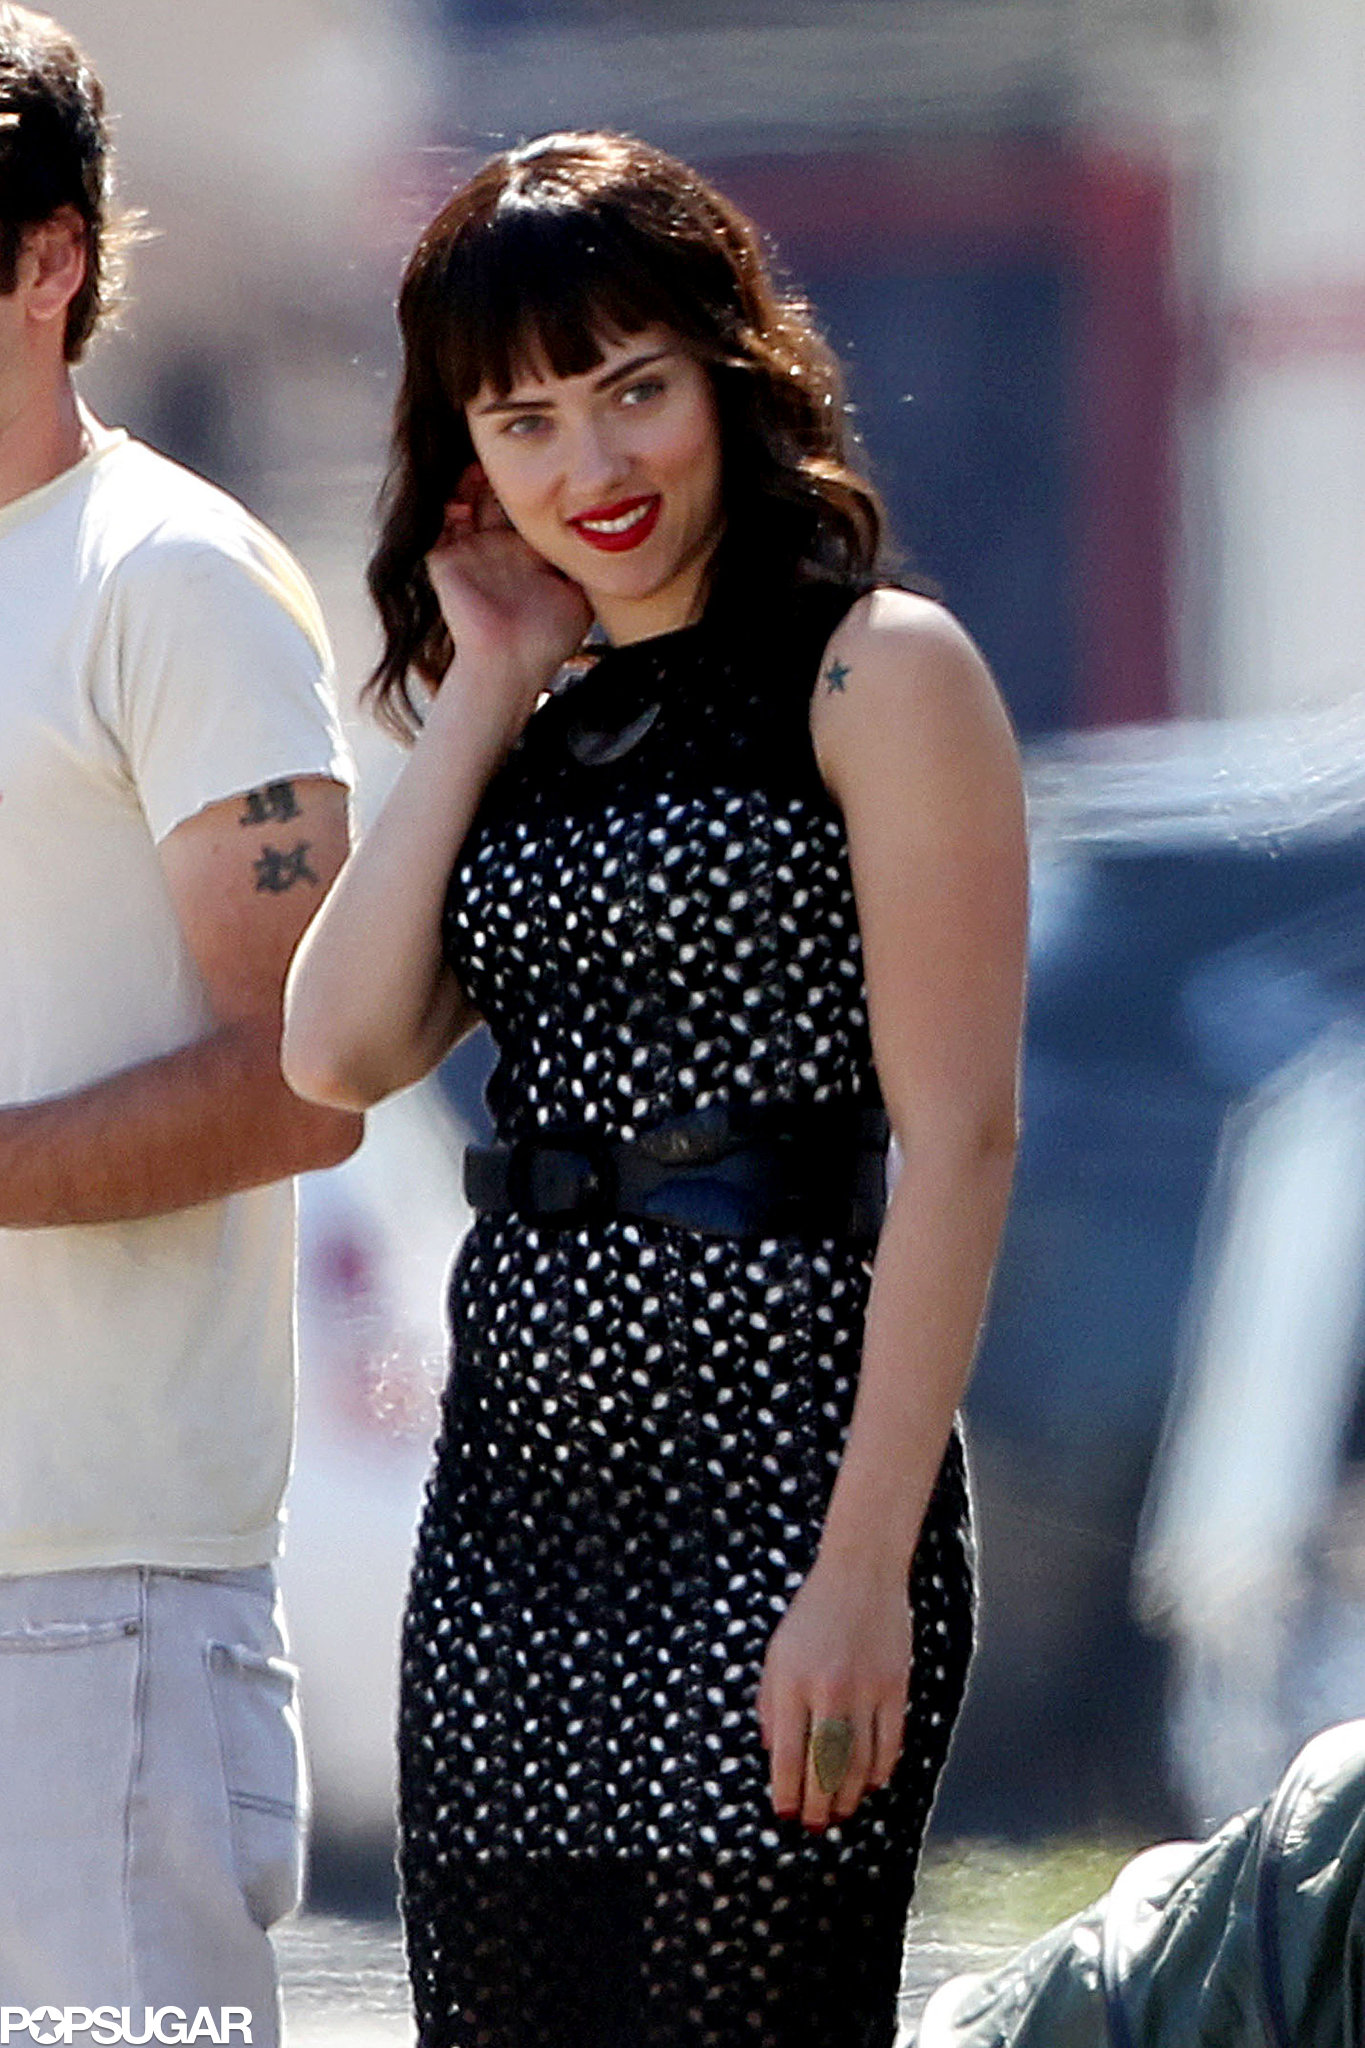 Scarlett Johansson wore a dark wig on the set of her new film, Chef, in LA.